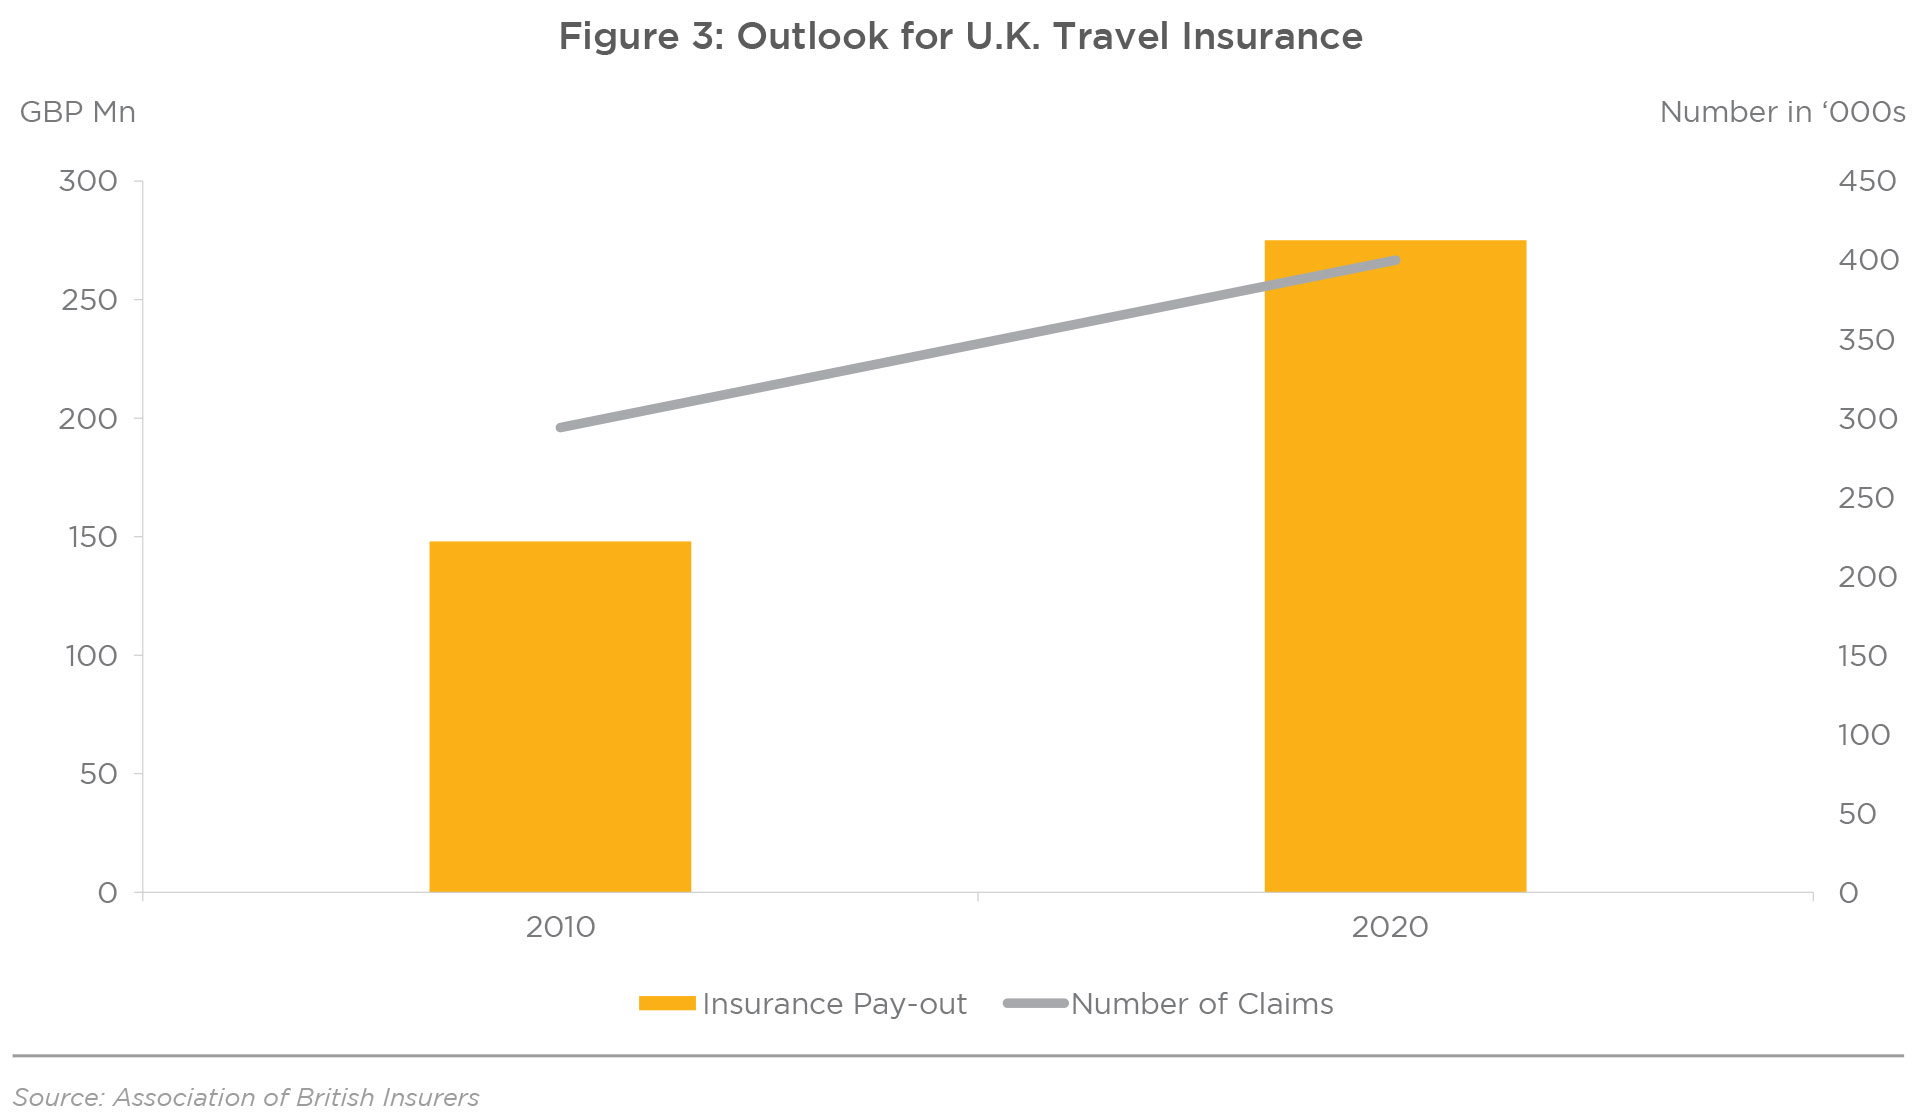 Figure 3: Outlook for U.K. Travel Insurance